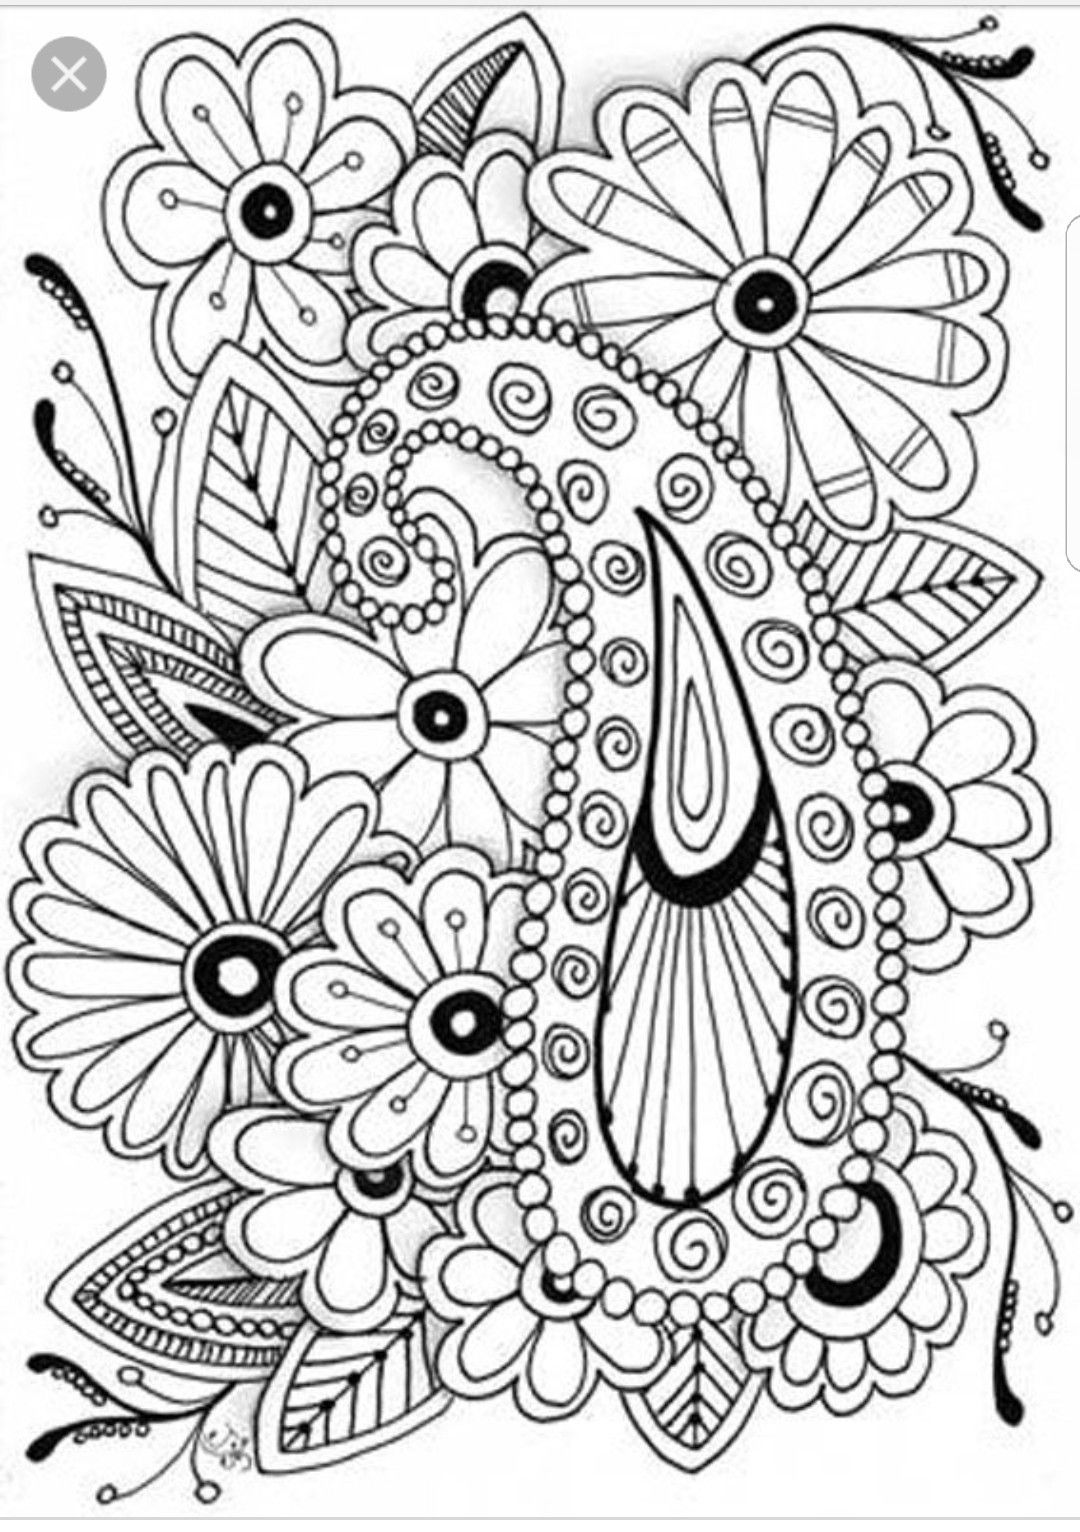 Pin By Julie Miner On Doodles And More Flower Coloring Pages Abstract Coloring Pages Coloring Pages